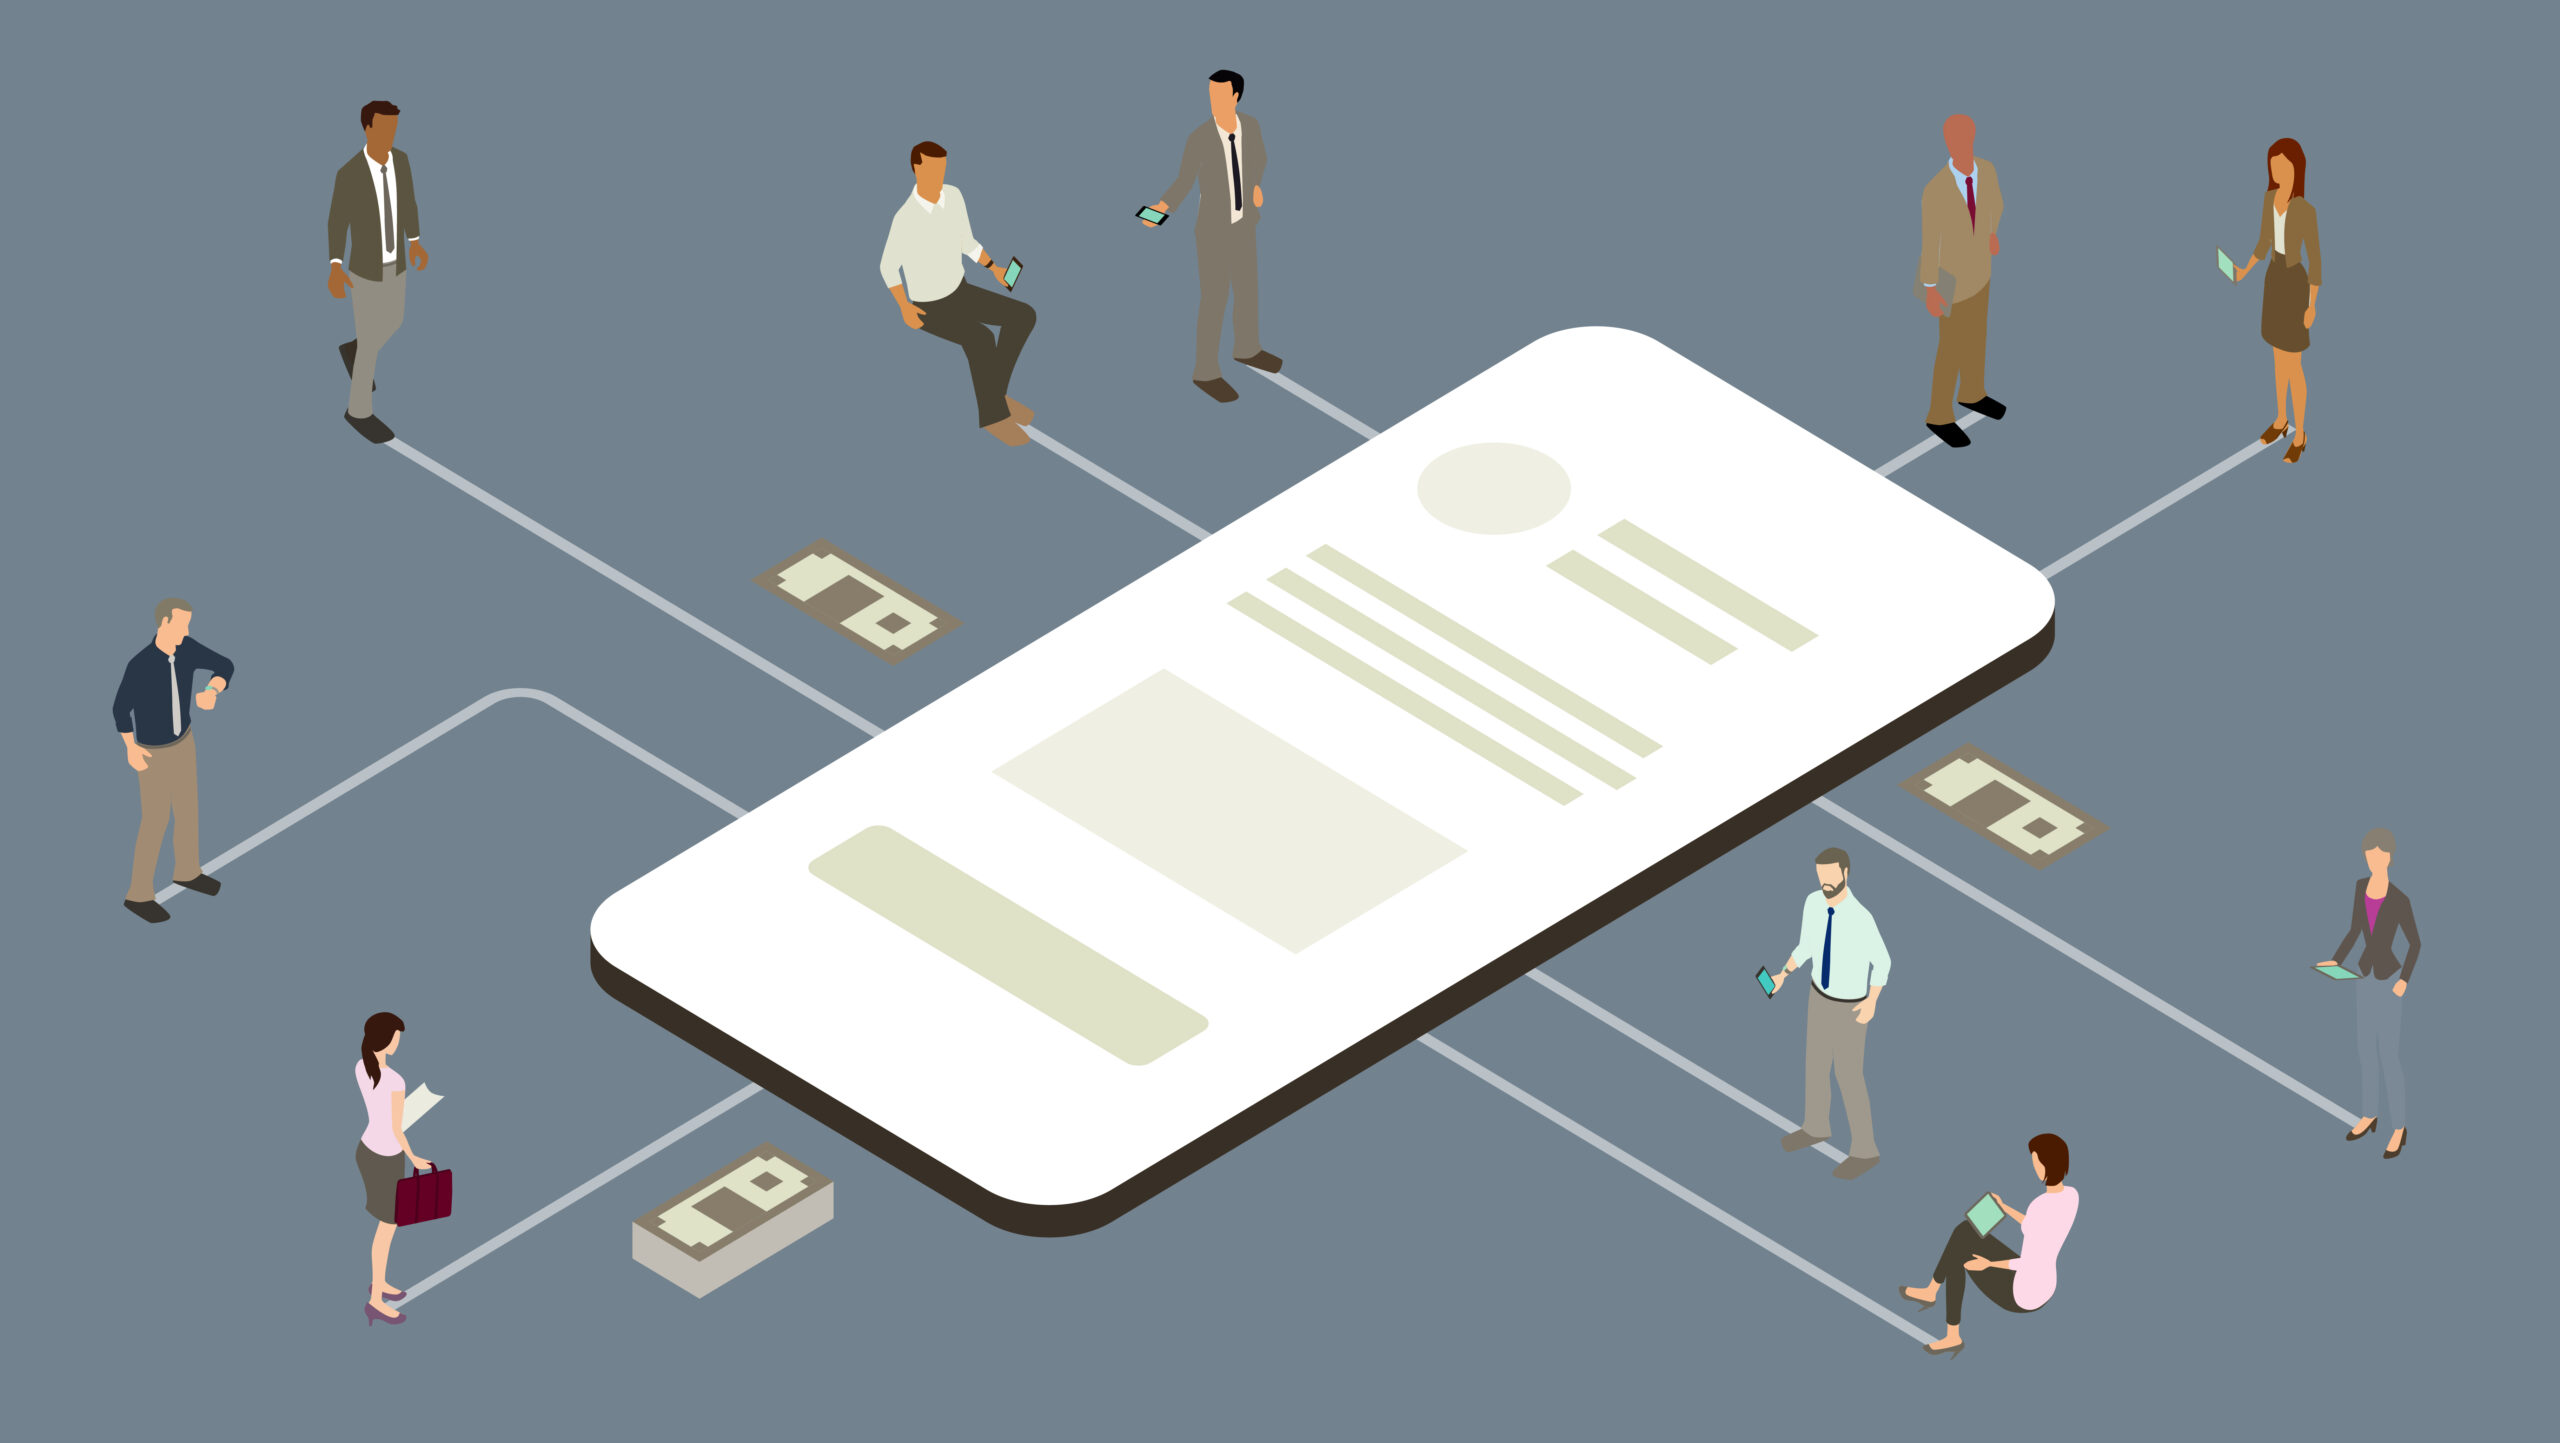 Illustration of an oversized, generic mobile phone connected to business people with some money icons — to communicate the concepts of business and finance. Vector illustration presented in isometric view on a gray-blue background.